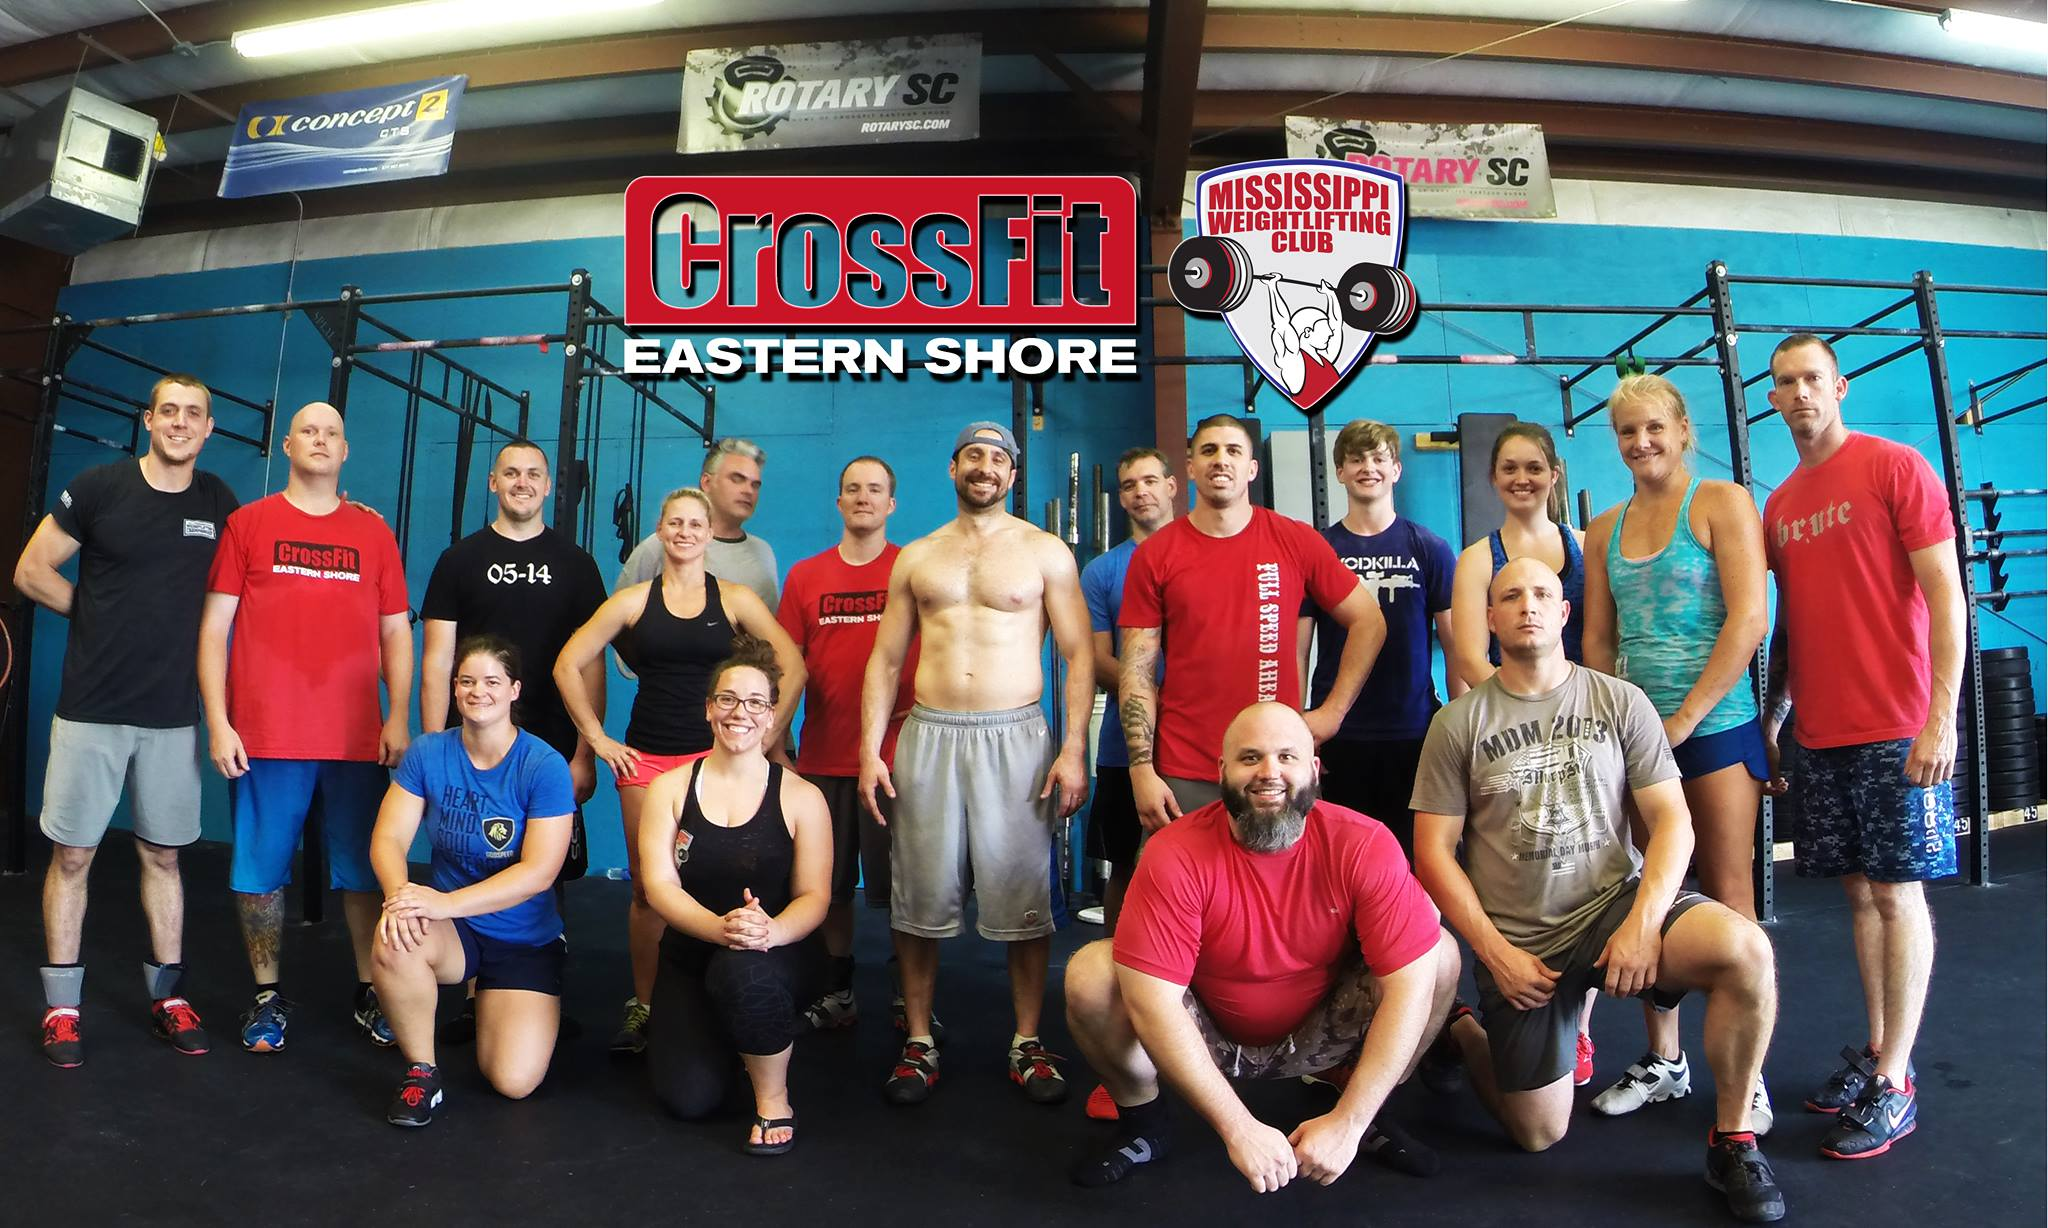 Mississippi Barbell's first out of state seminar at CrossFit Eastern Shore in Alabama. Photo credit: Tyler Smith